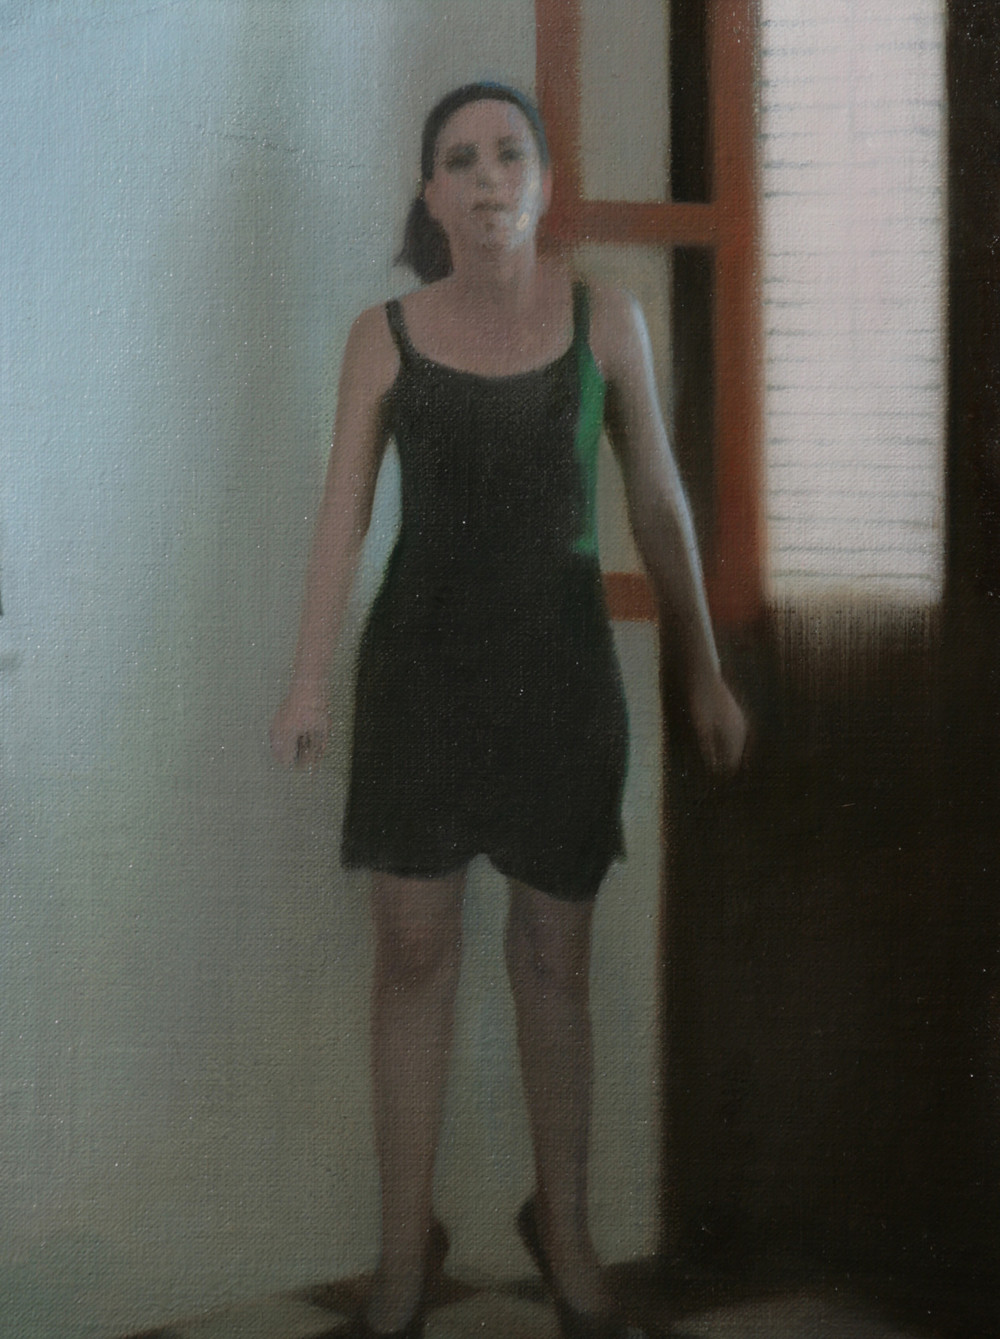 Jump Study , 2008, Oil on linen, 11 x 8 inches, Private collection